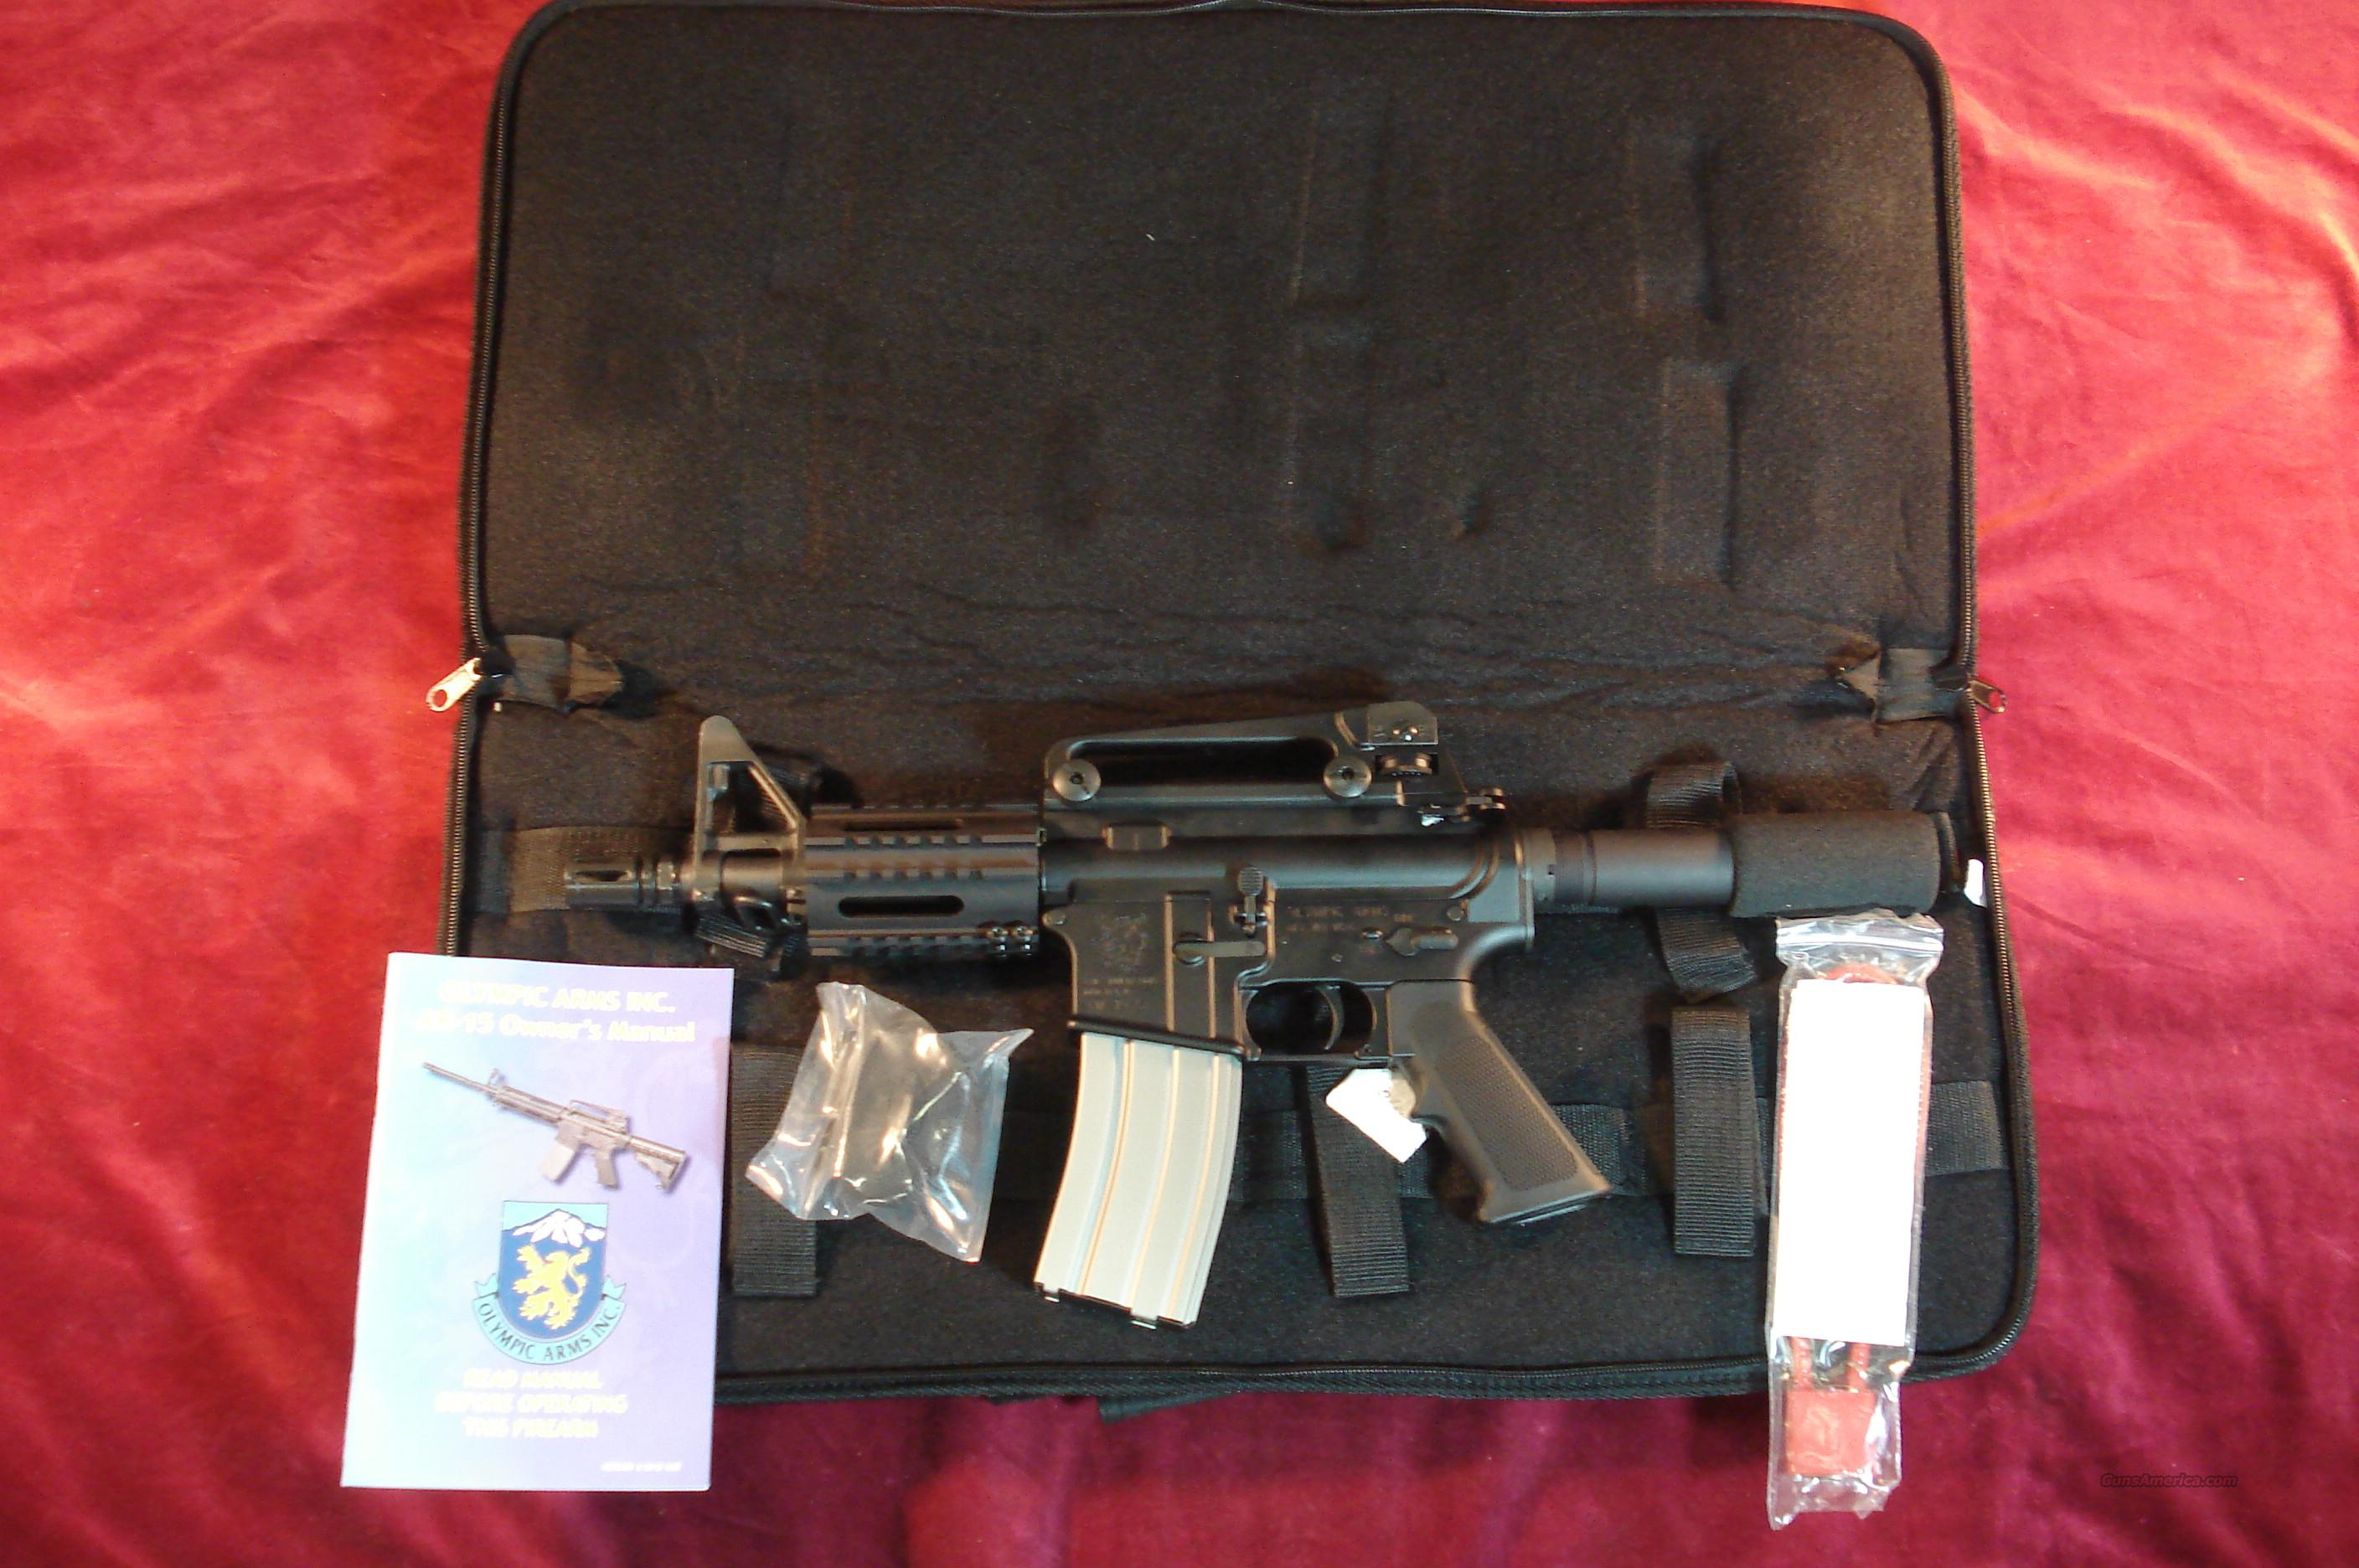 OLYMPIC ARMS AR15 PISTOL 223 CAL, REMOVABLE CARRY HANDLE, FREE FLOAT QUAD RAIL NEW  Guns > Pistols > Olympic Arms Pistols